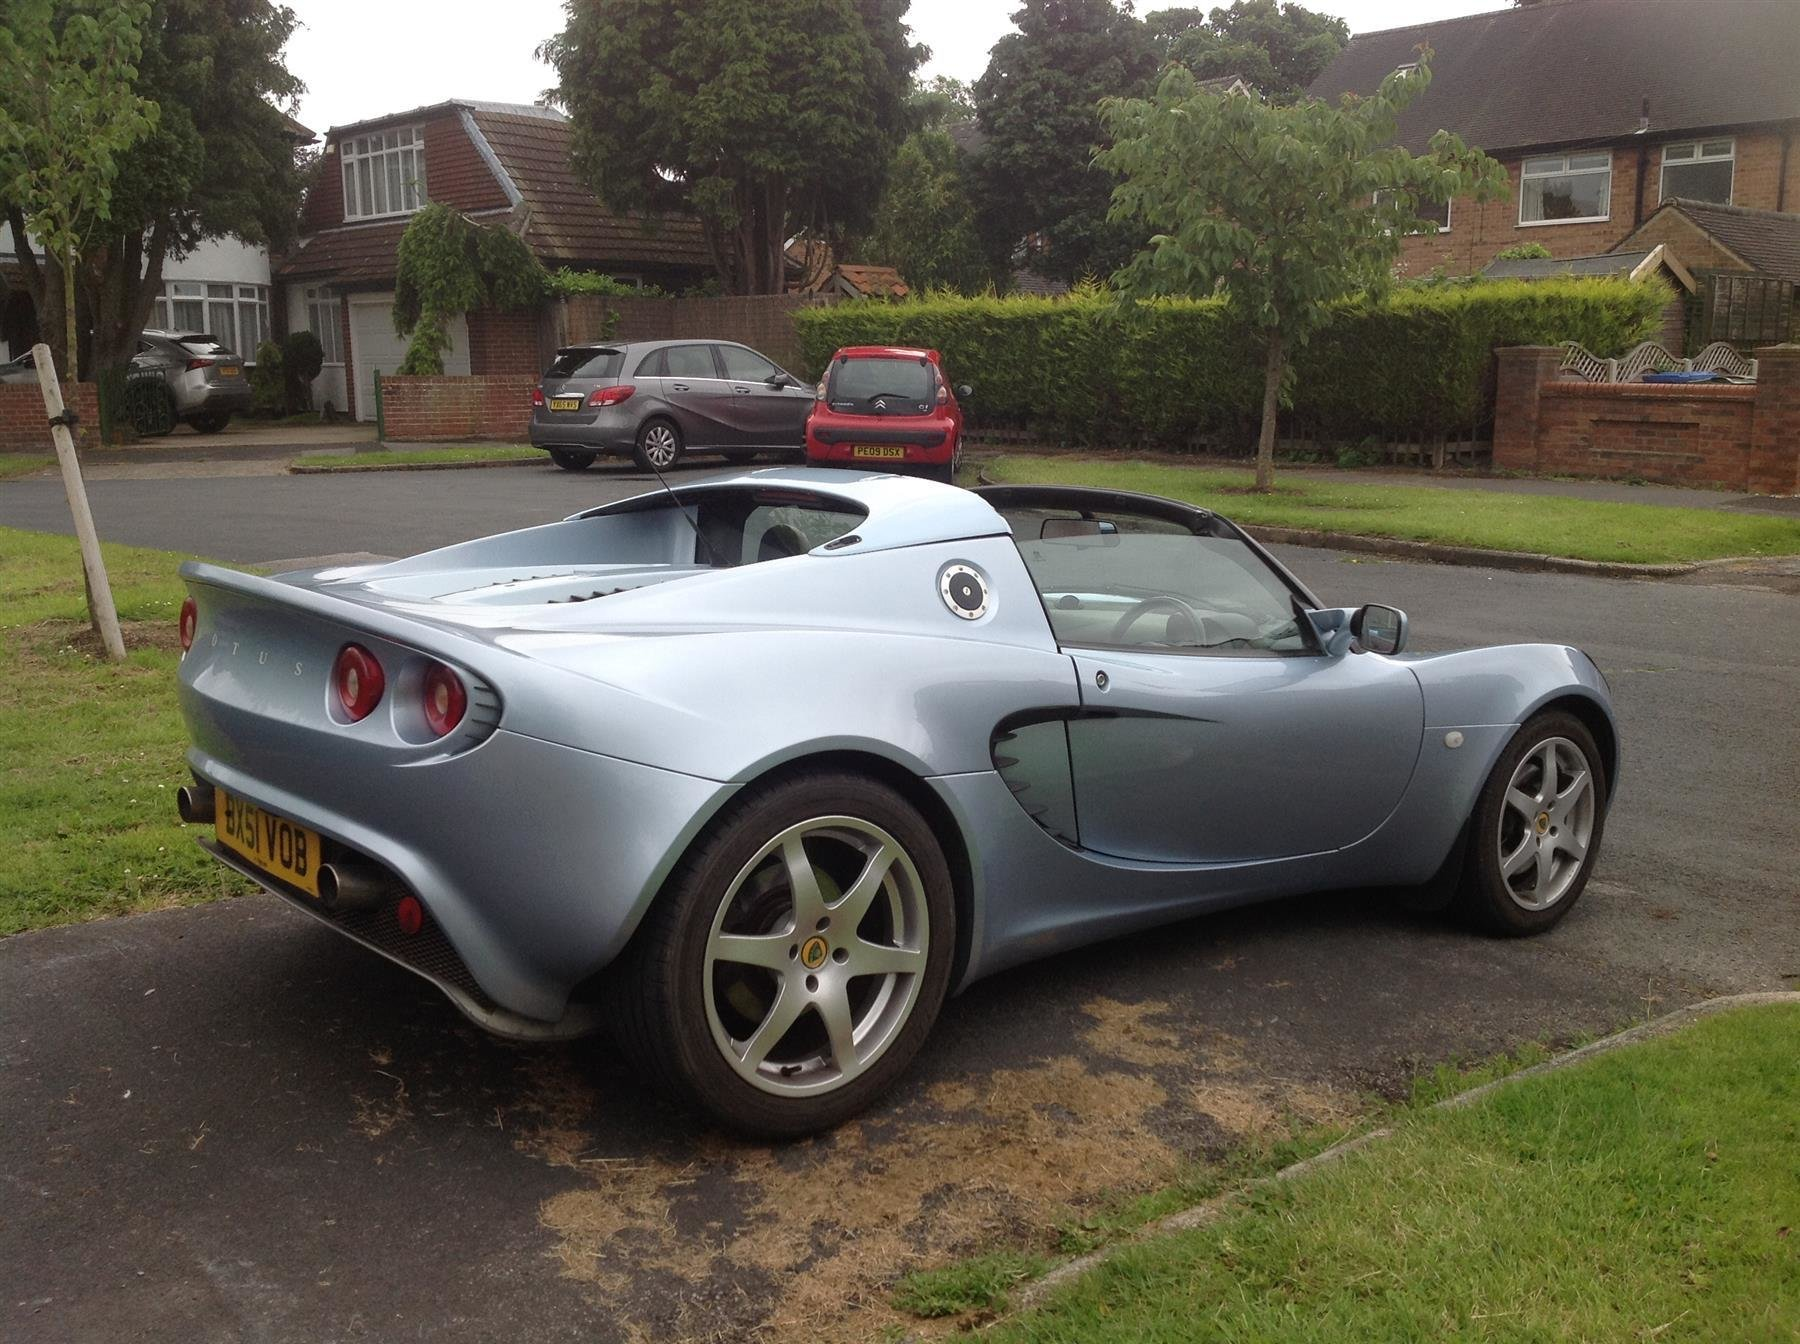 Latest Used 2001 Lotus Elise S2 16V For Sale In East Yorkshire Free Download